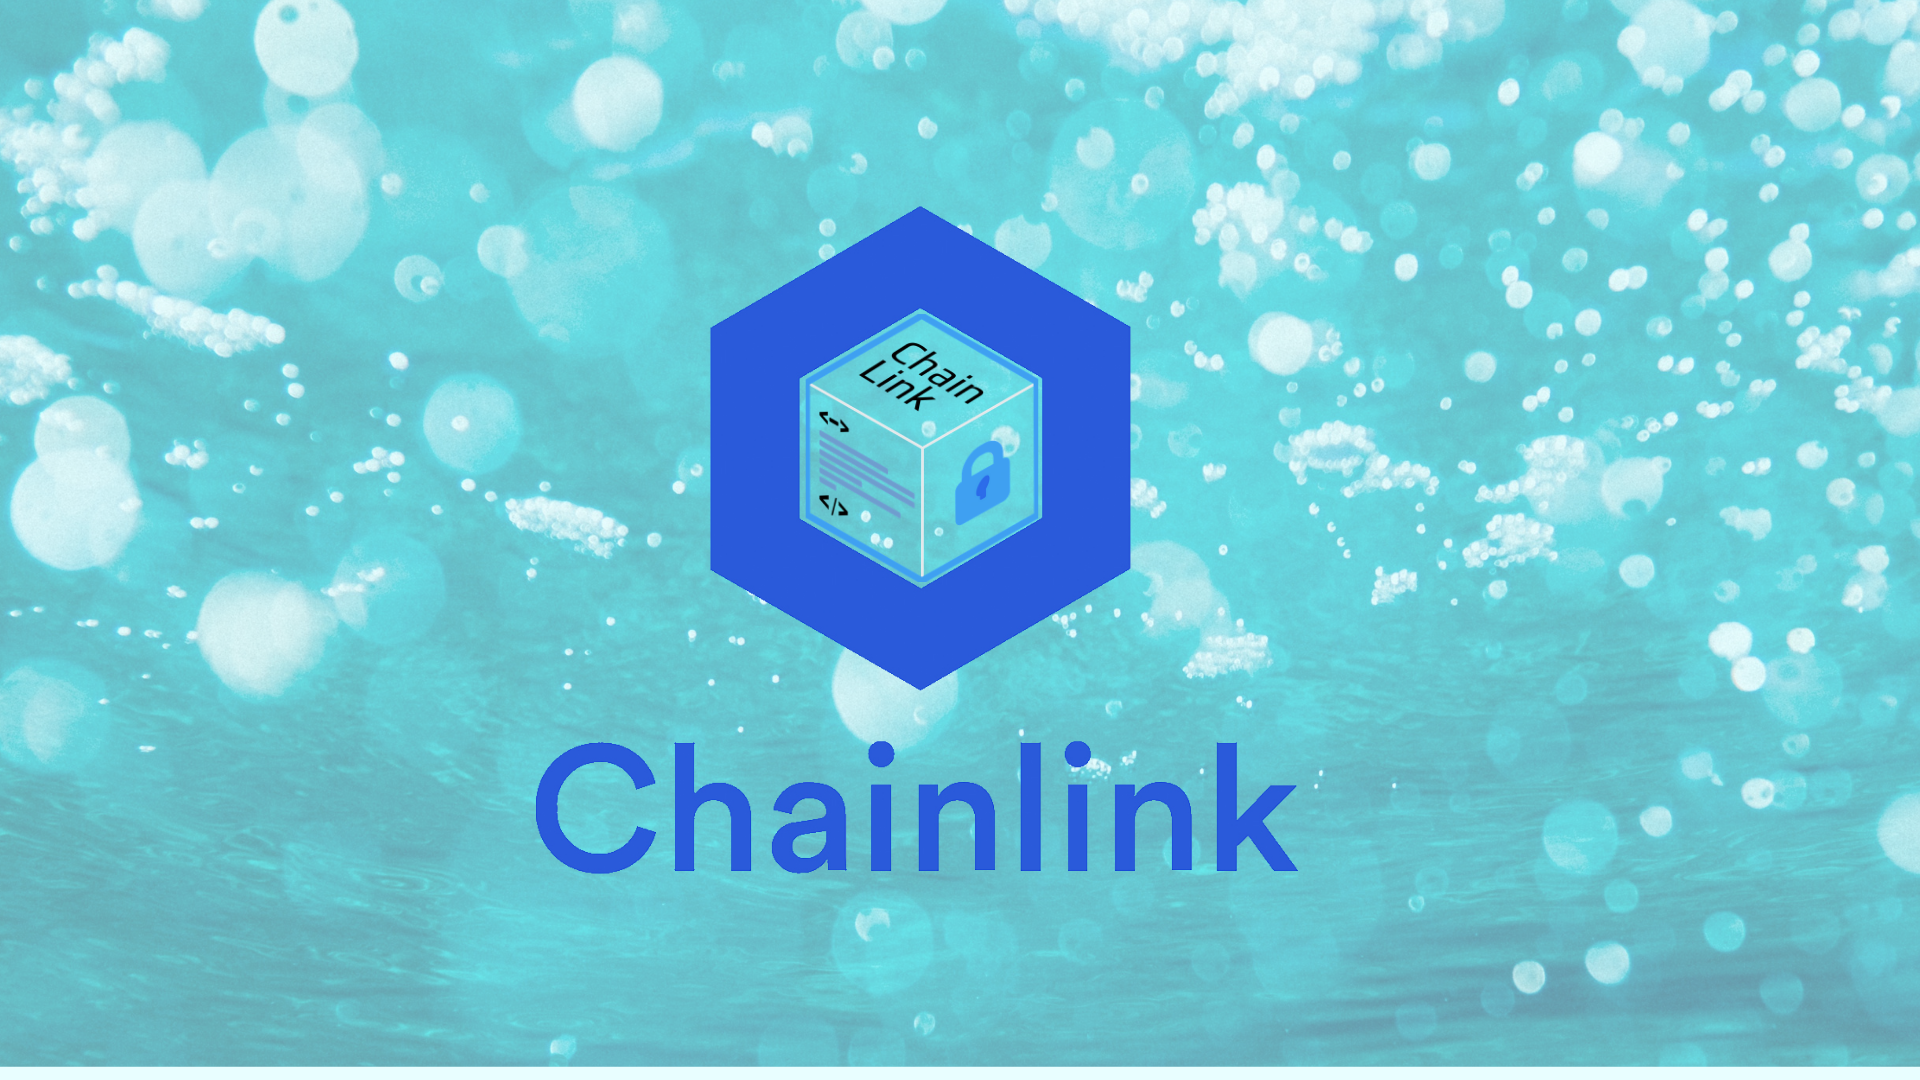 How To Store & Secure Your Chainlink(LINK) - CryptoSec